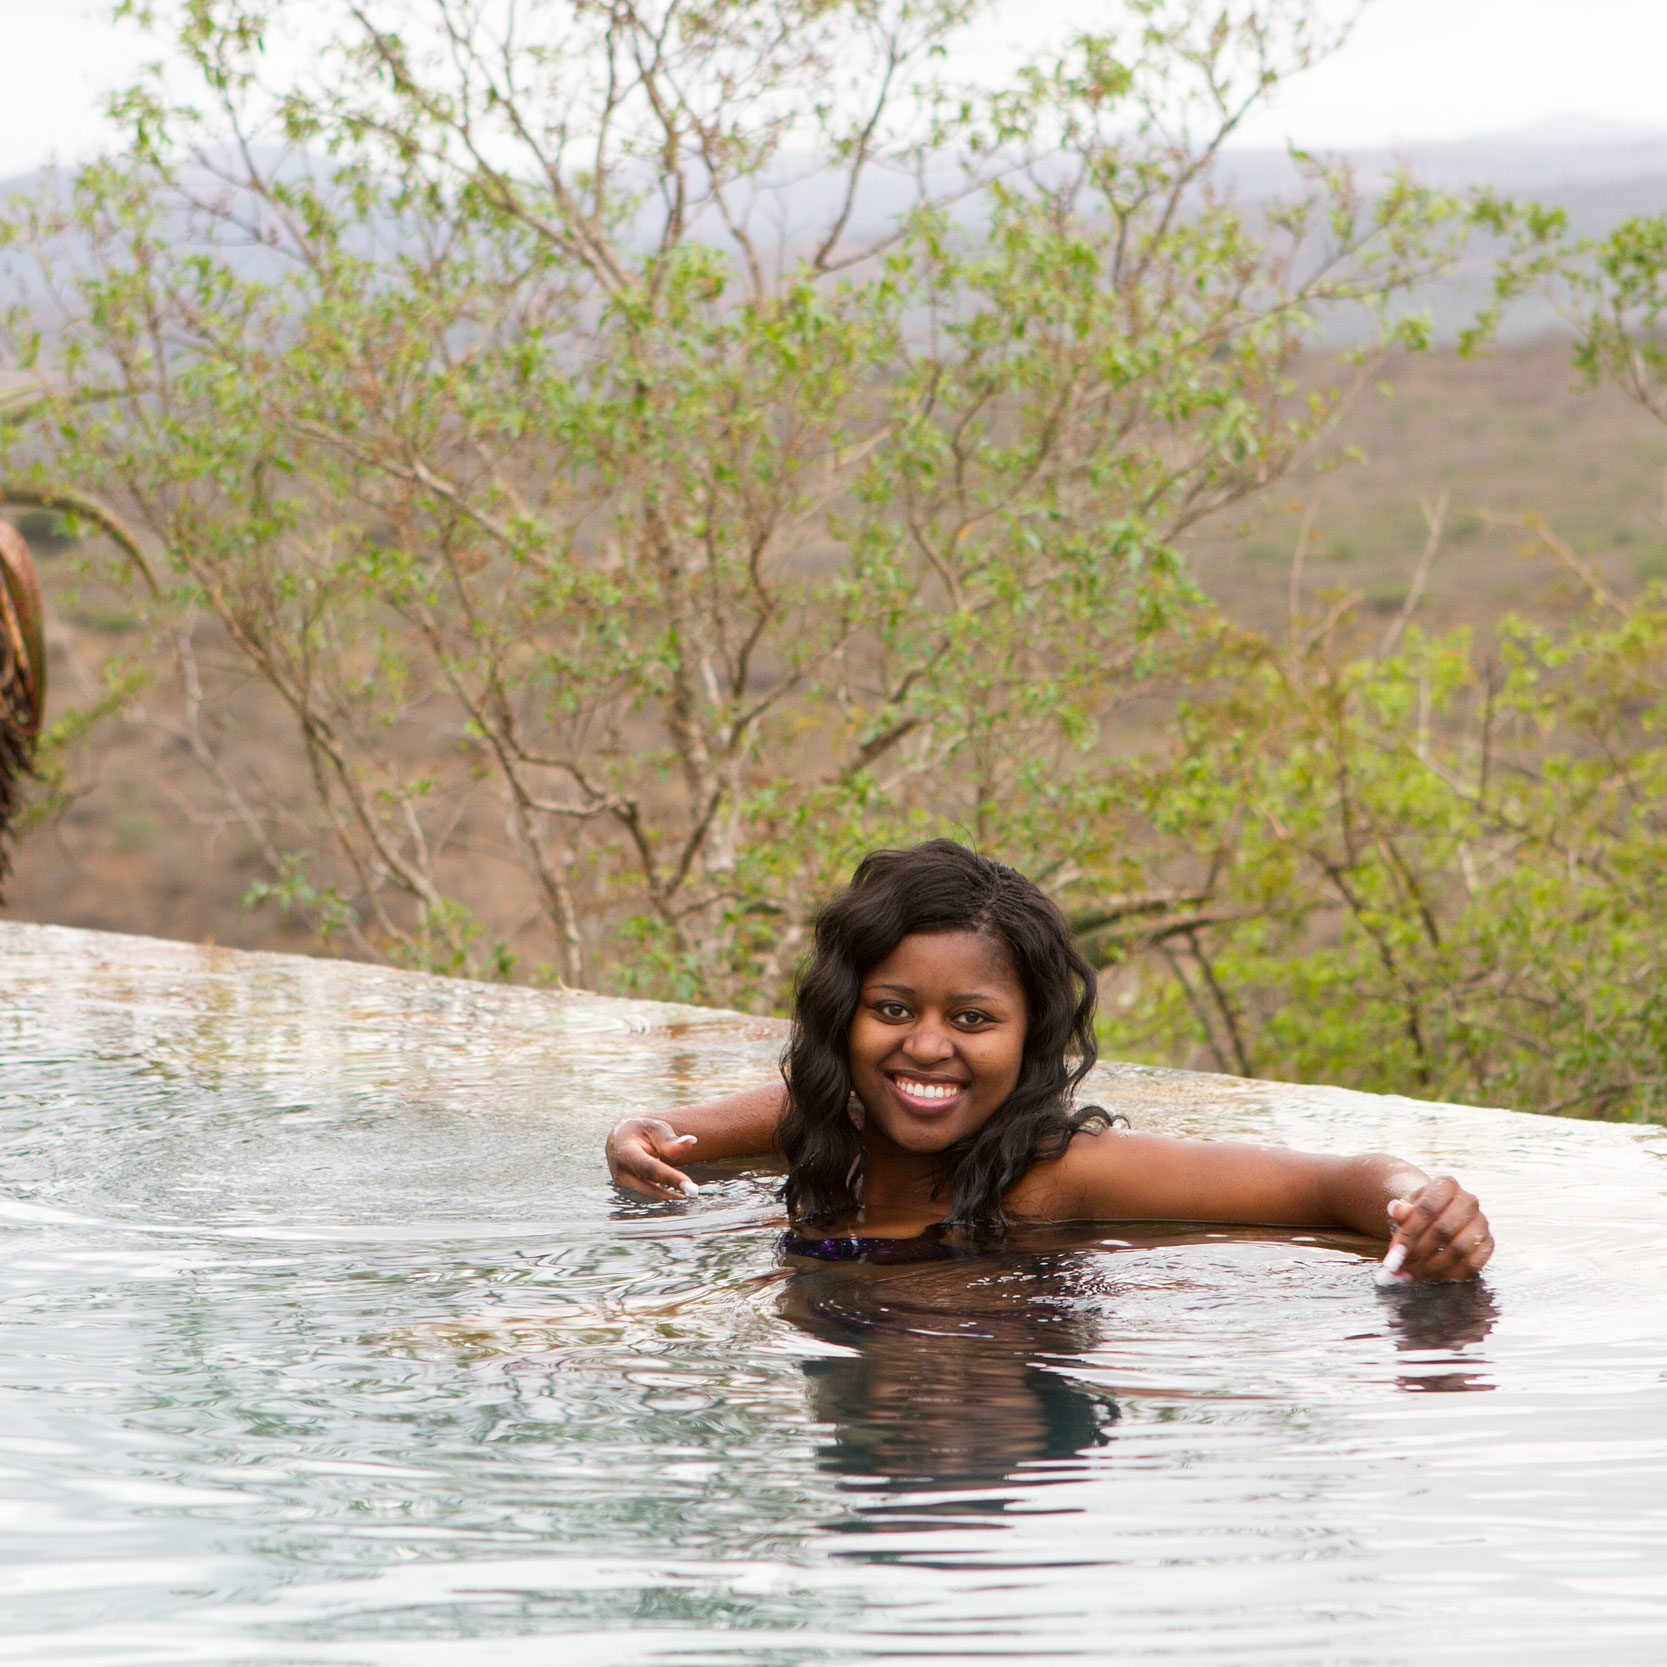 Miss Hlabisa 2015 enjoys the pool at Rhino Ridge Safari Lodge